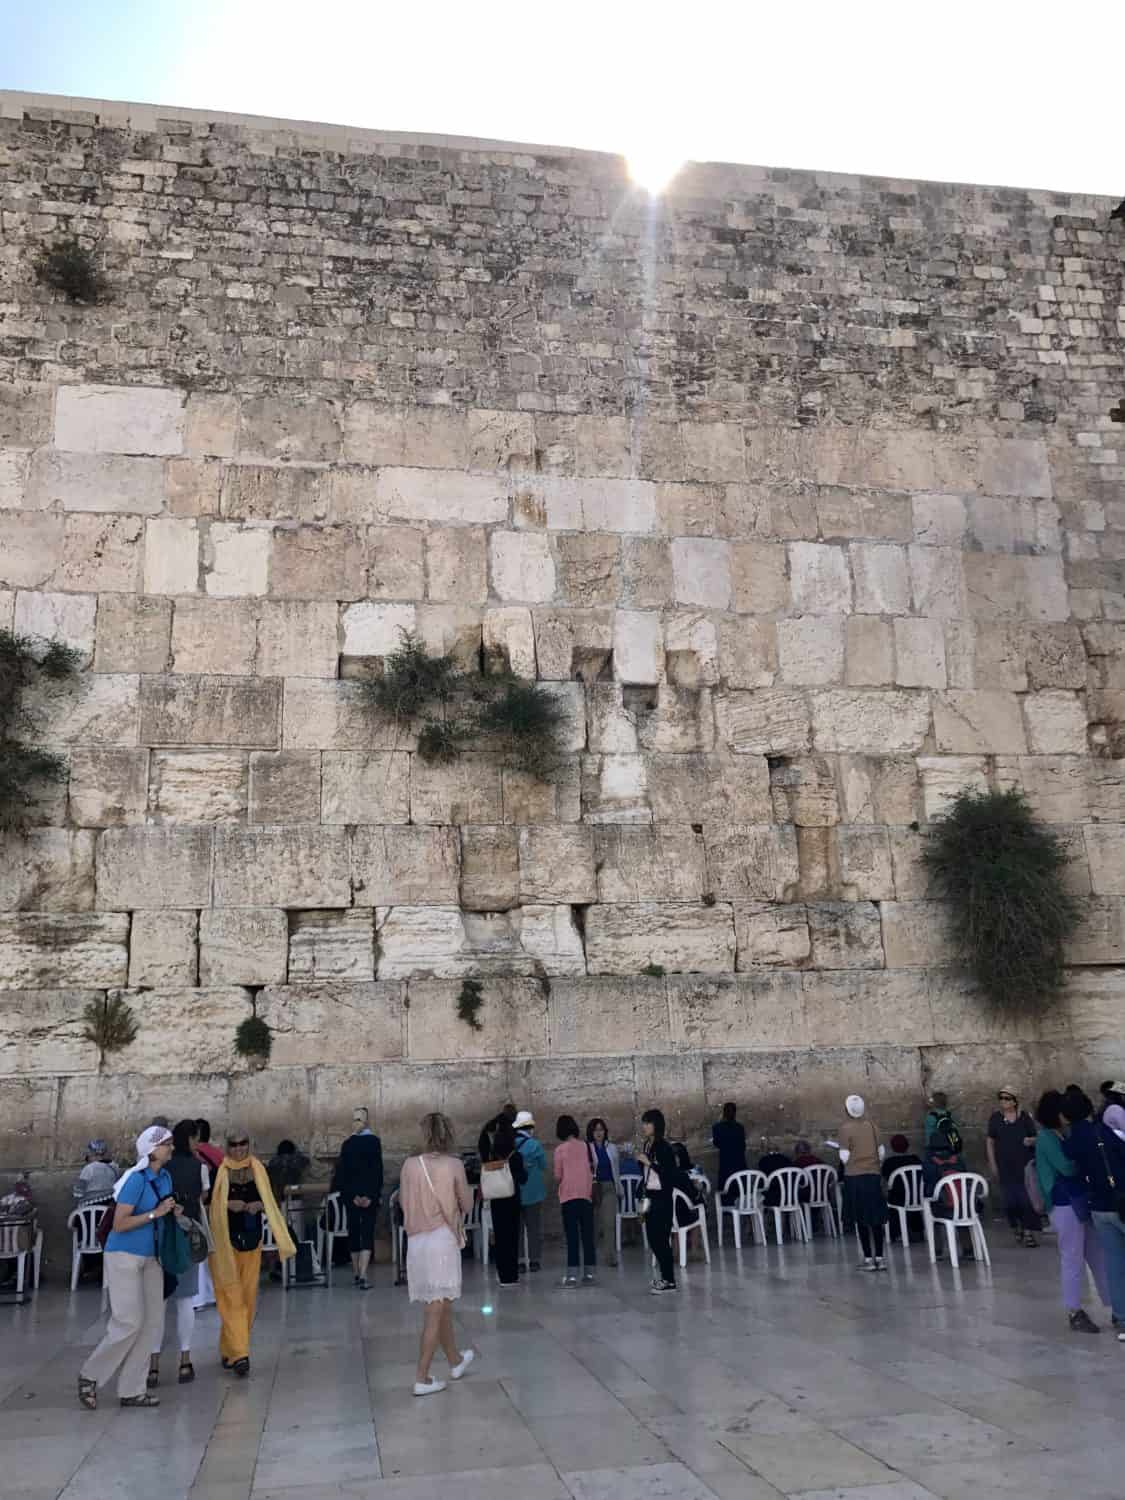 Experiencing the Western Wall in Jerusalem